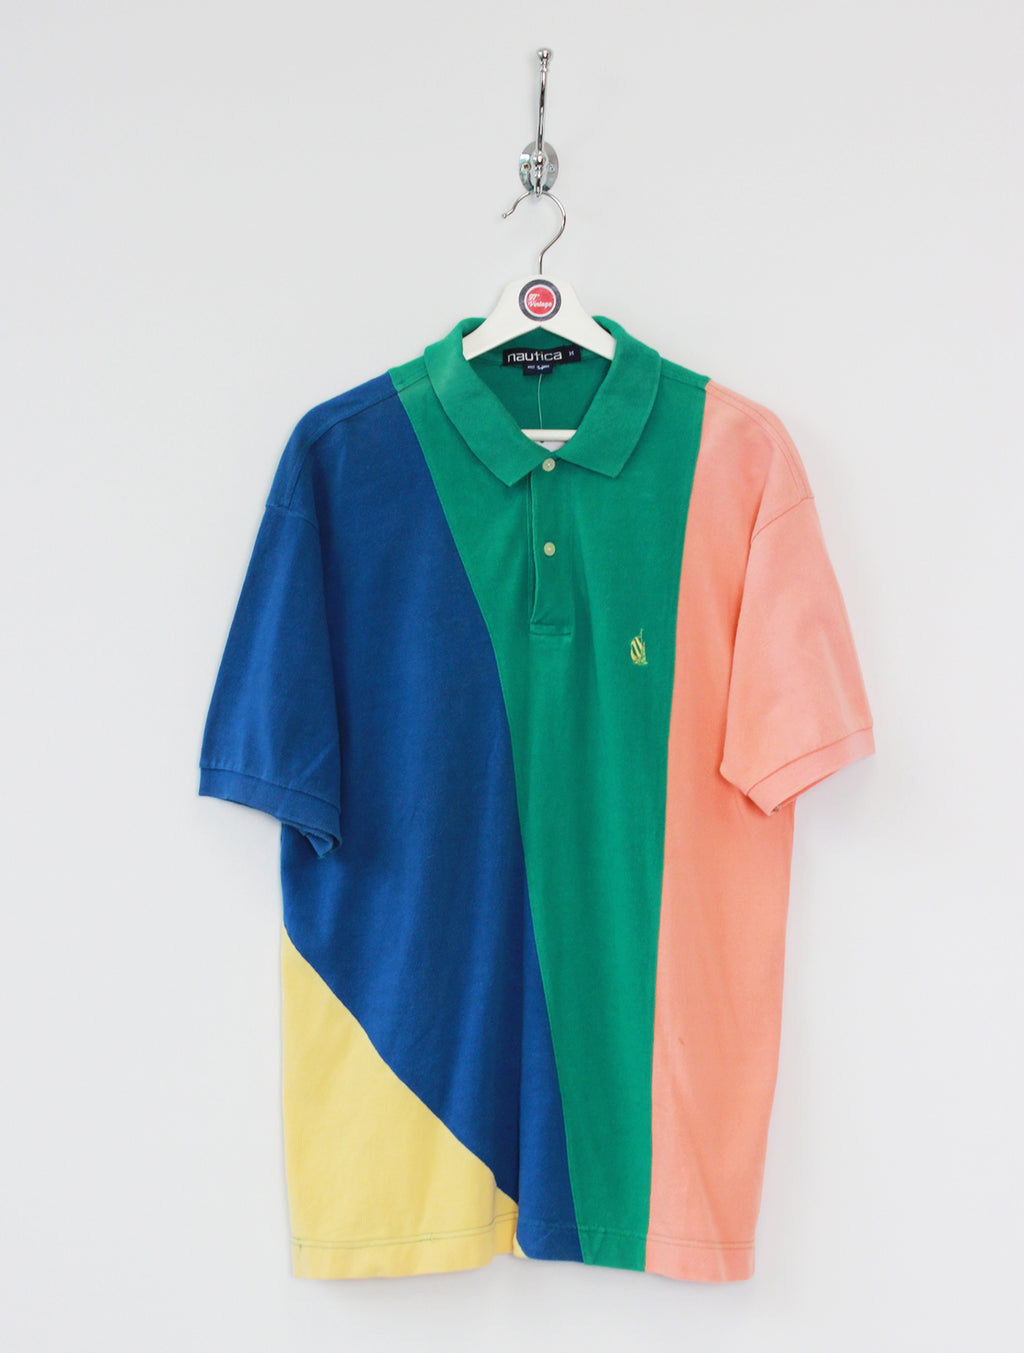 Nautica Polo Shirt (M)